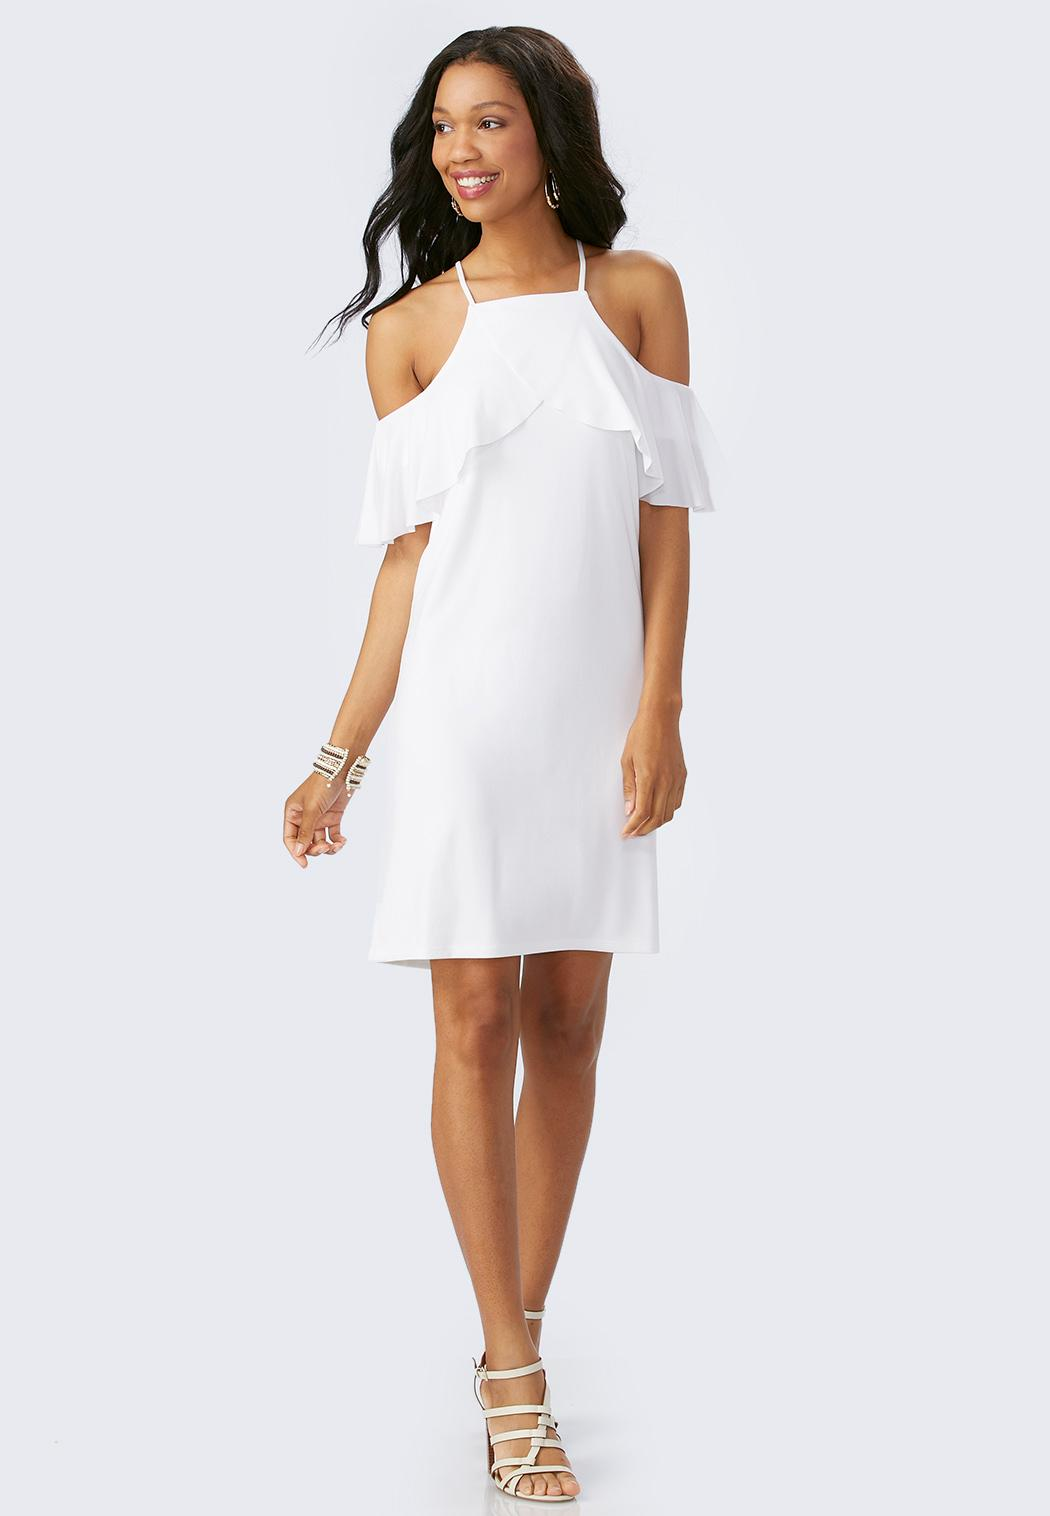 Women's Plus Size Dresses | Cato Fashions